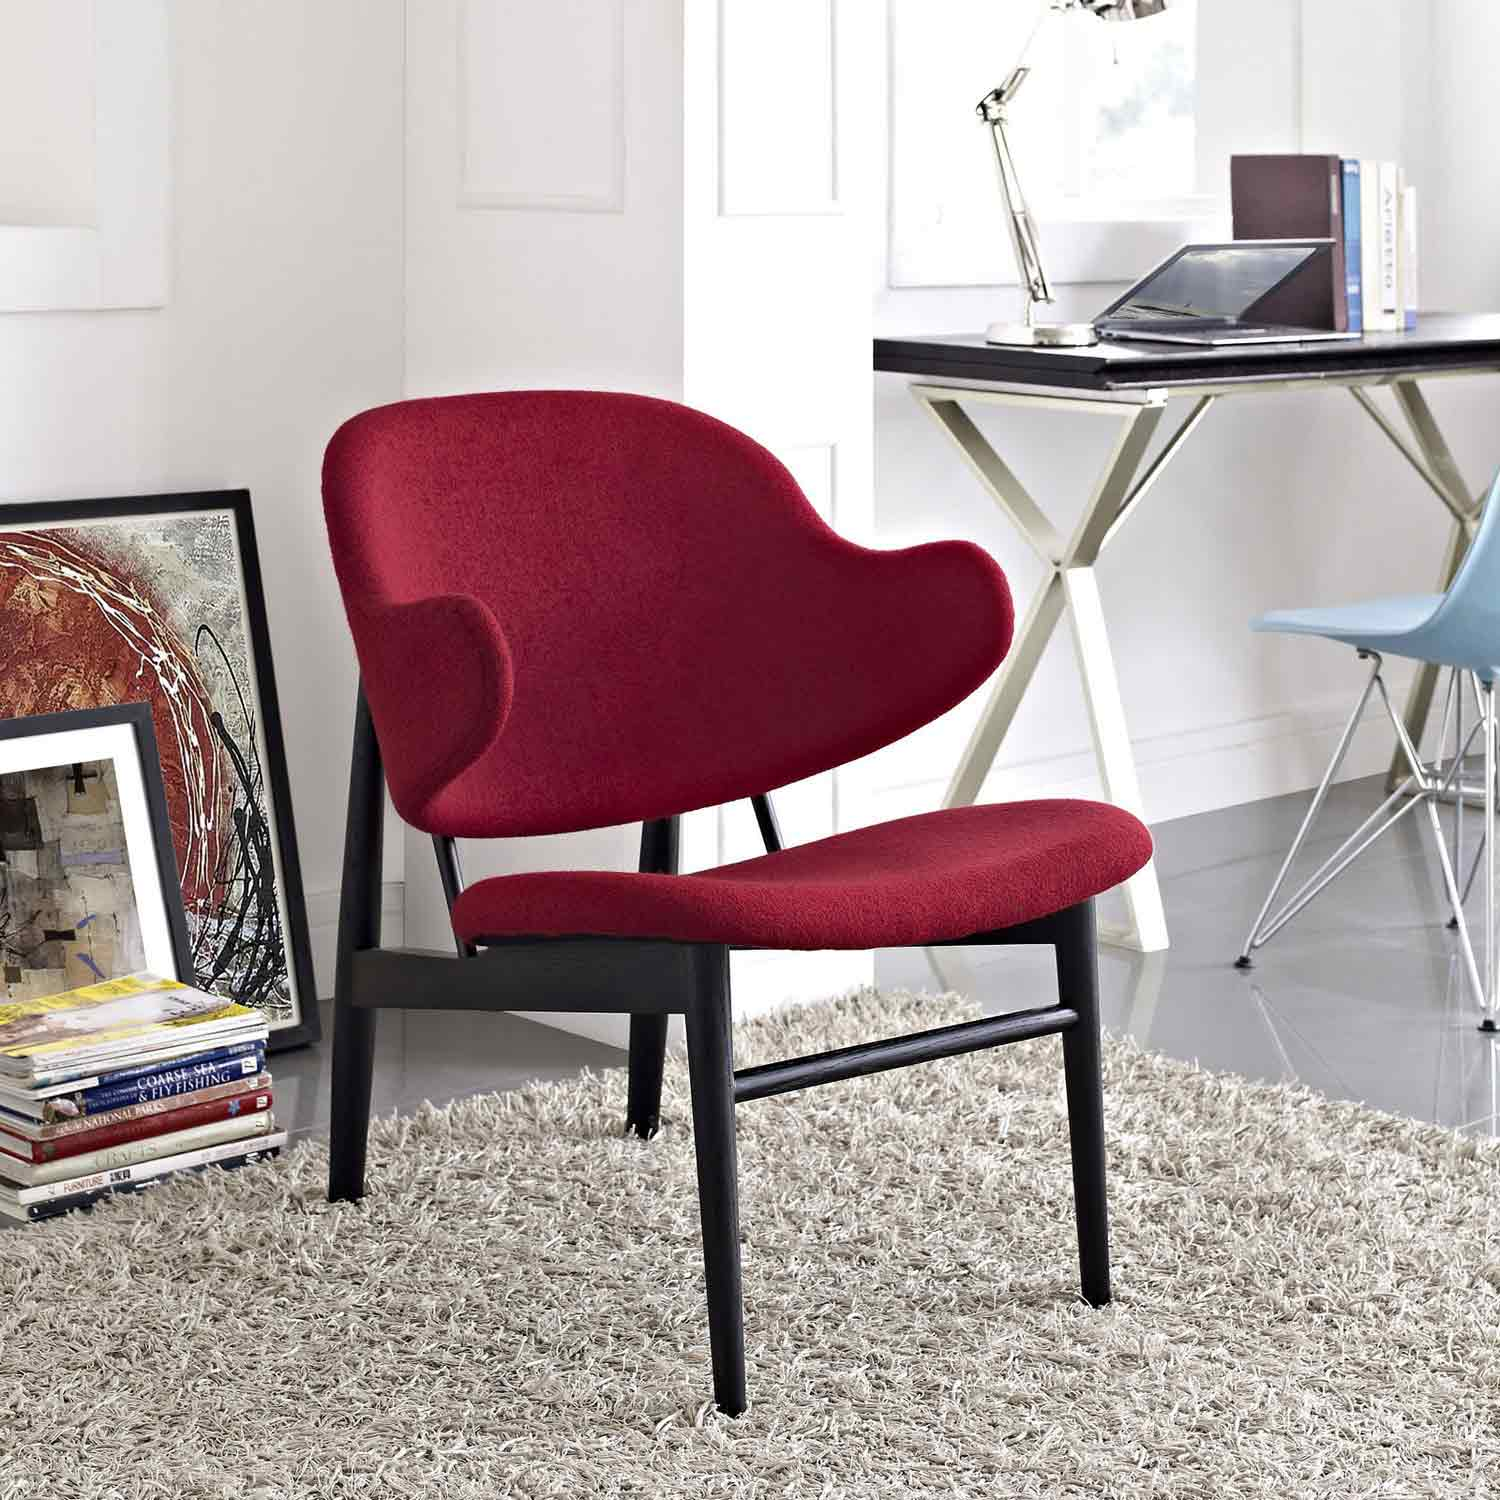 Modway Suffuse Lounge Chair - Black/Red